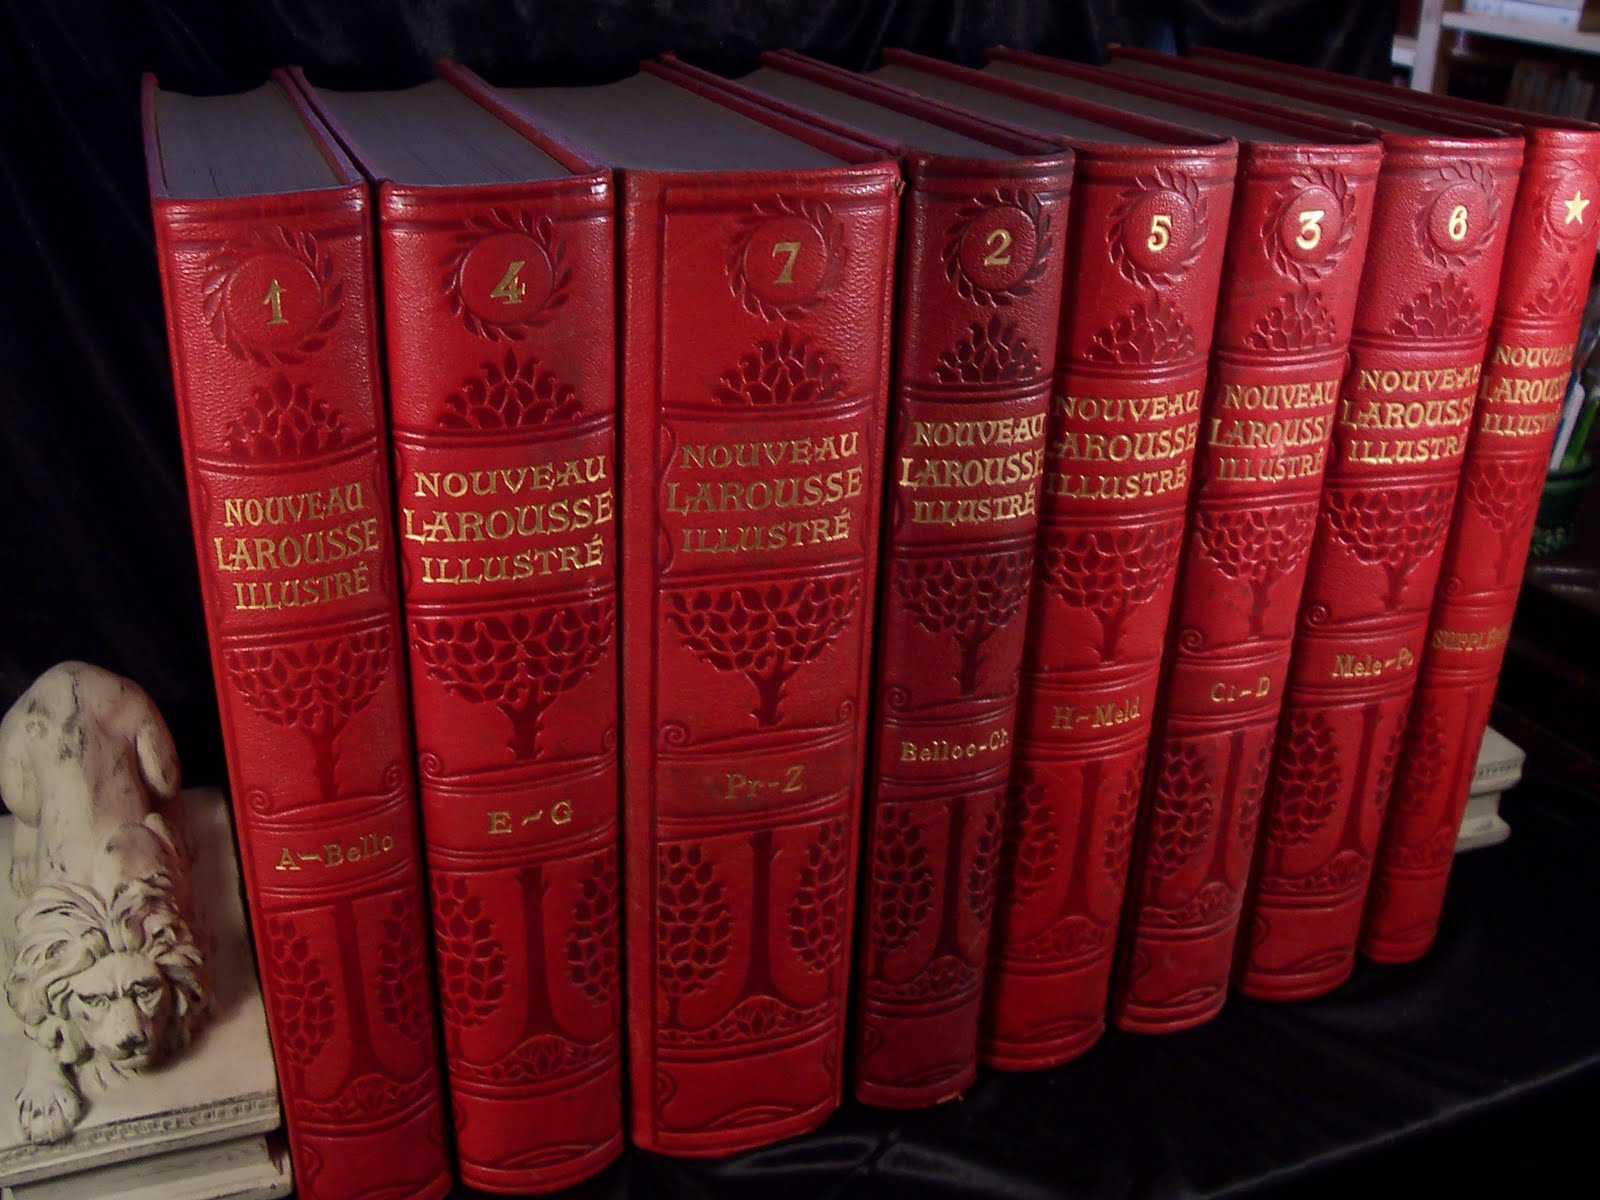 encyclopedie larousse du xxe siecle